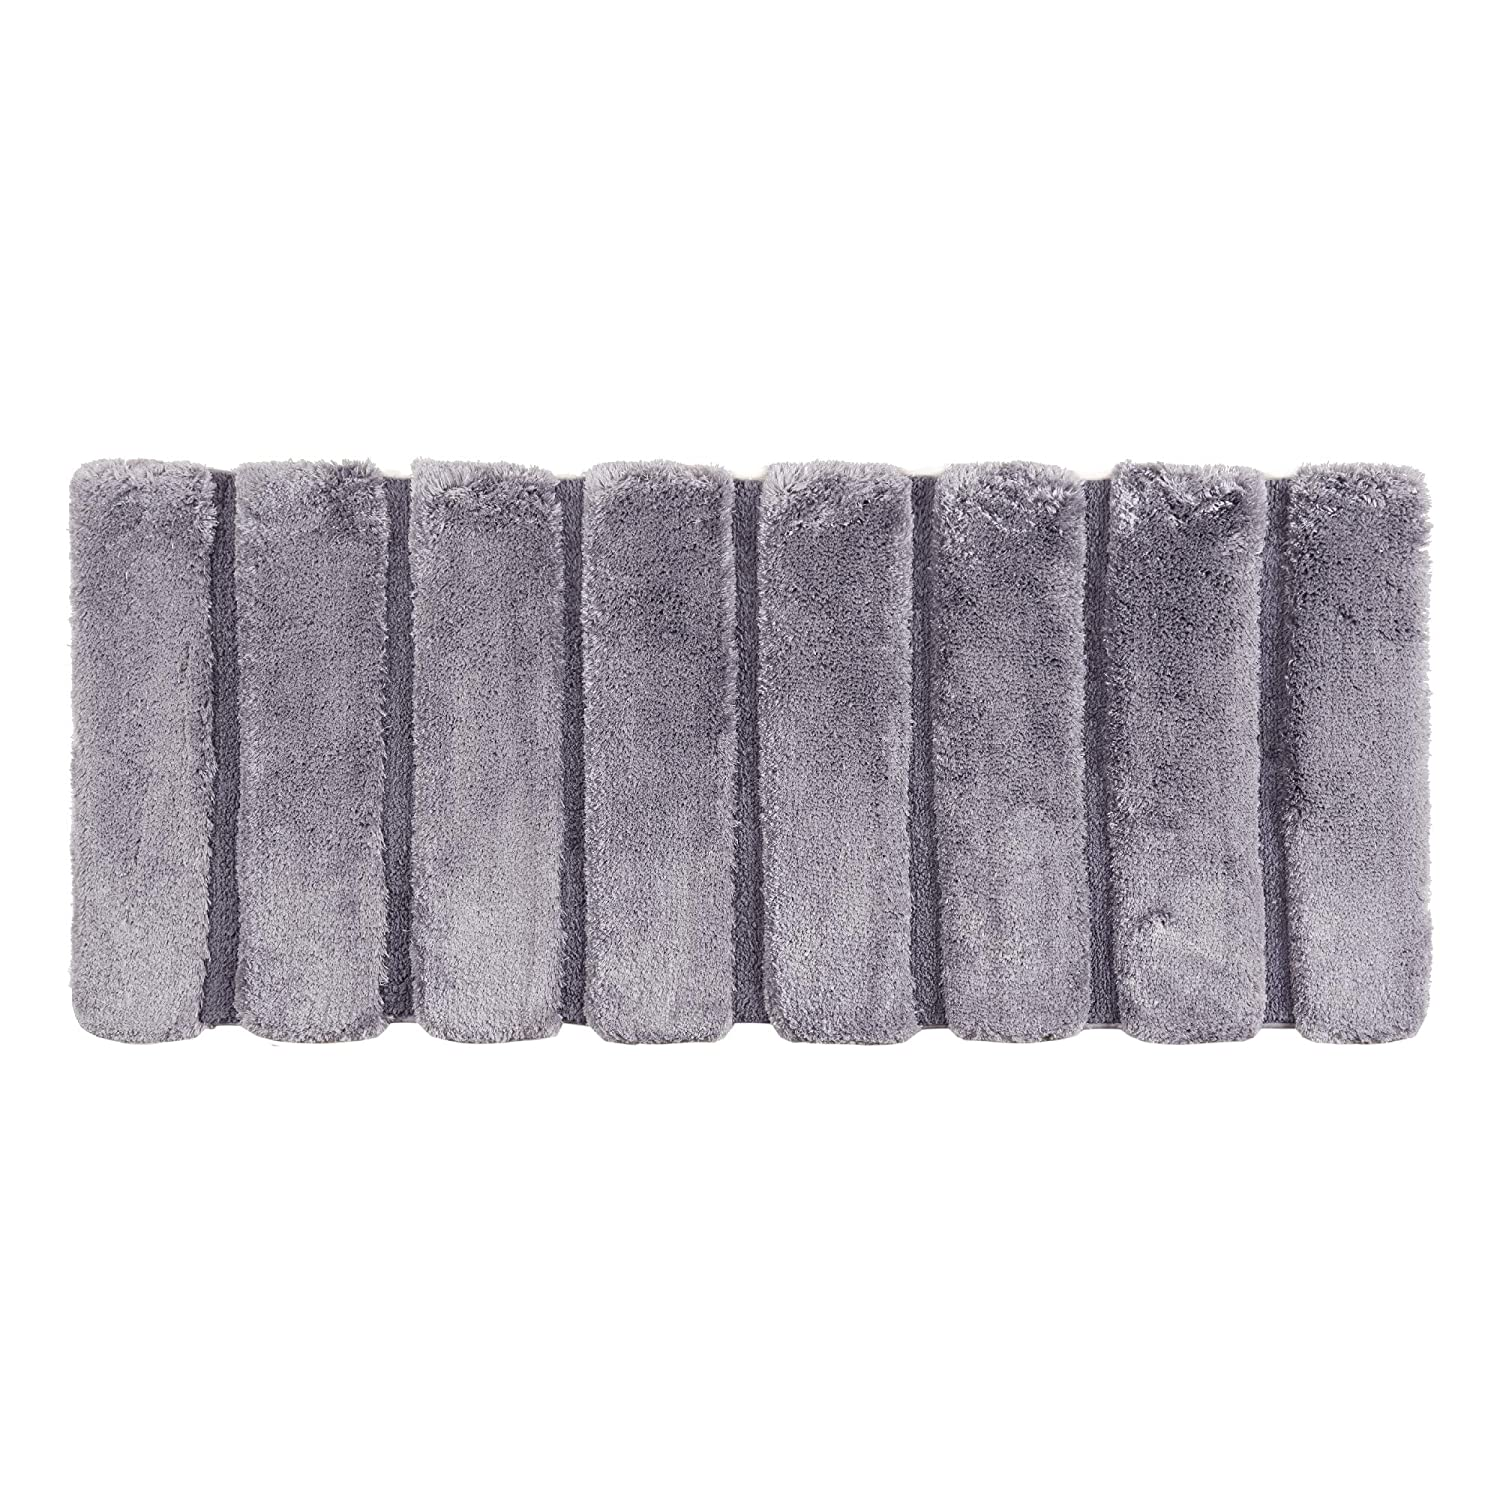 "Madison Park Tufted Pearl Channel Washable Bath Mat, Casual Solid Mildew Resistant Shower Mat, 24"" W X 60"" L, Grey"